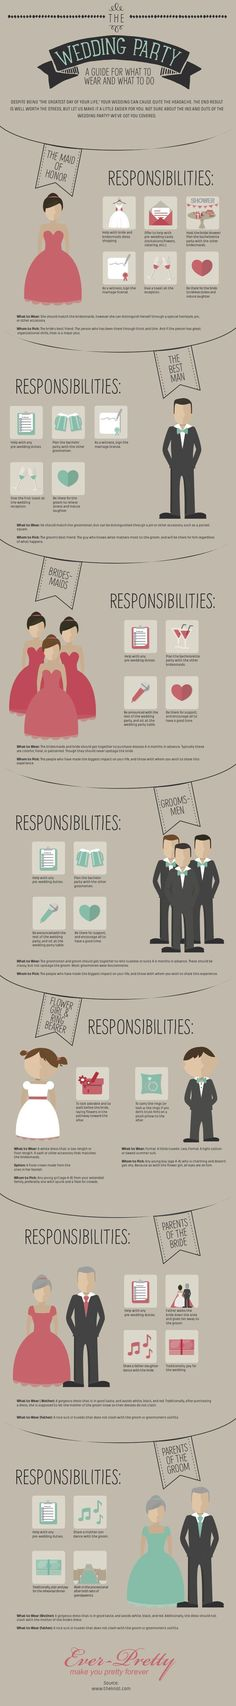 The Wedding Party   #Infographic #Wedding #party